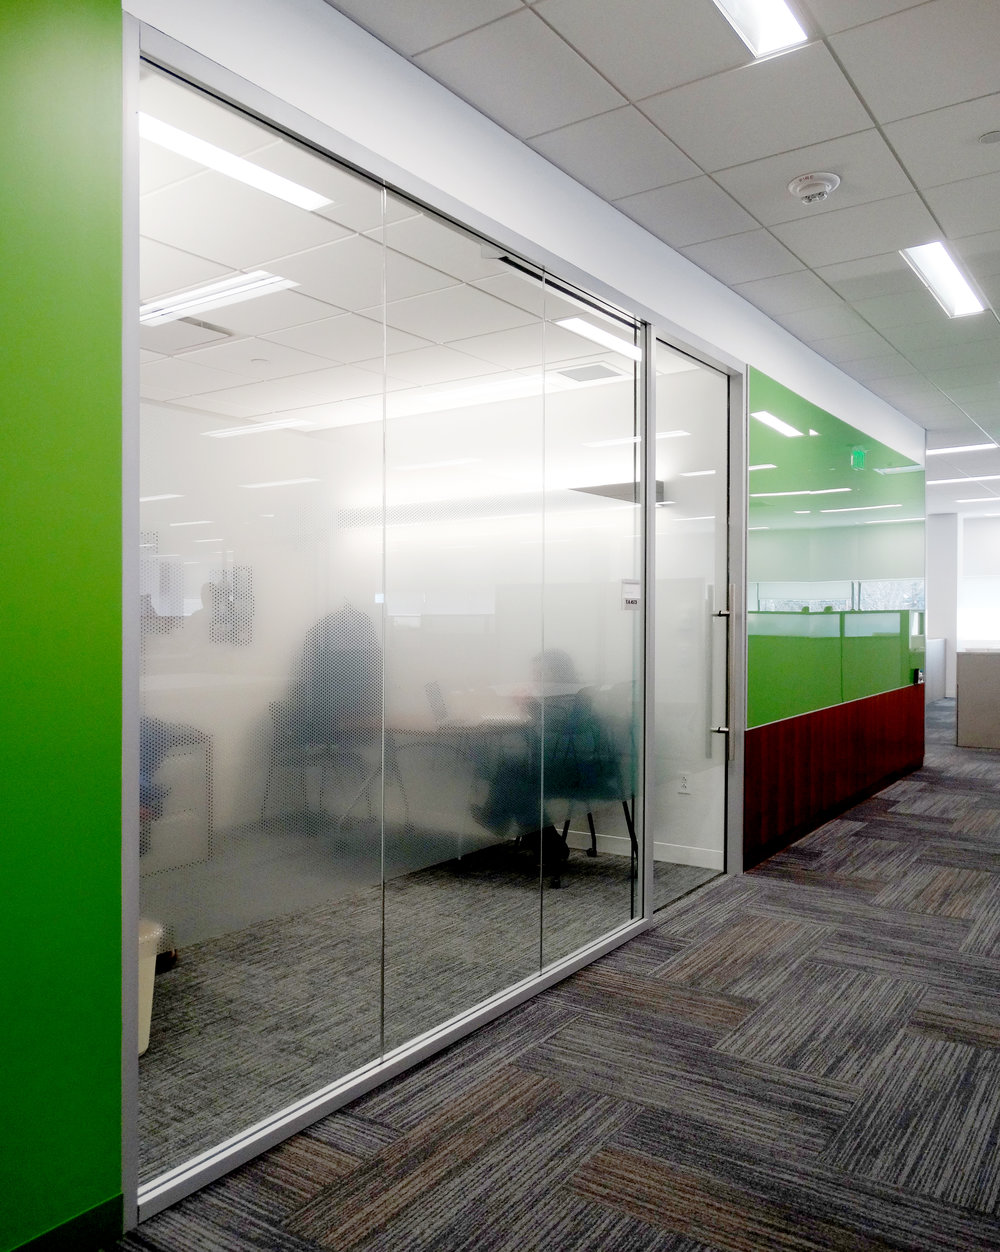 Litespace Demountable Frameless Glass Slider - Spaceworks AI.jpg